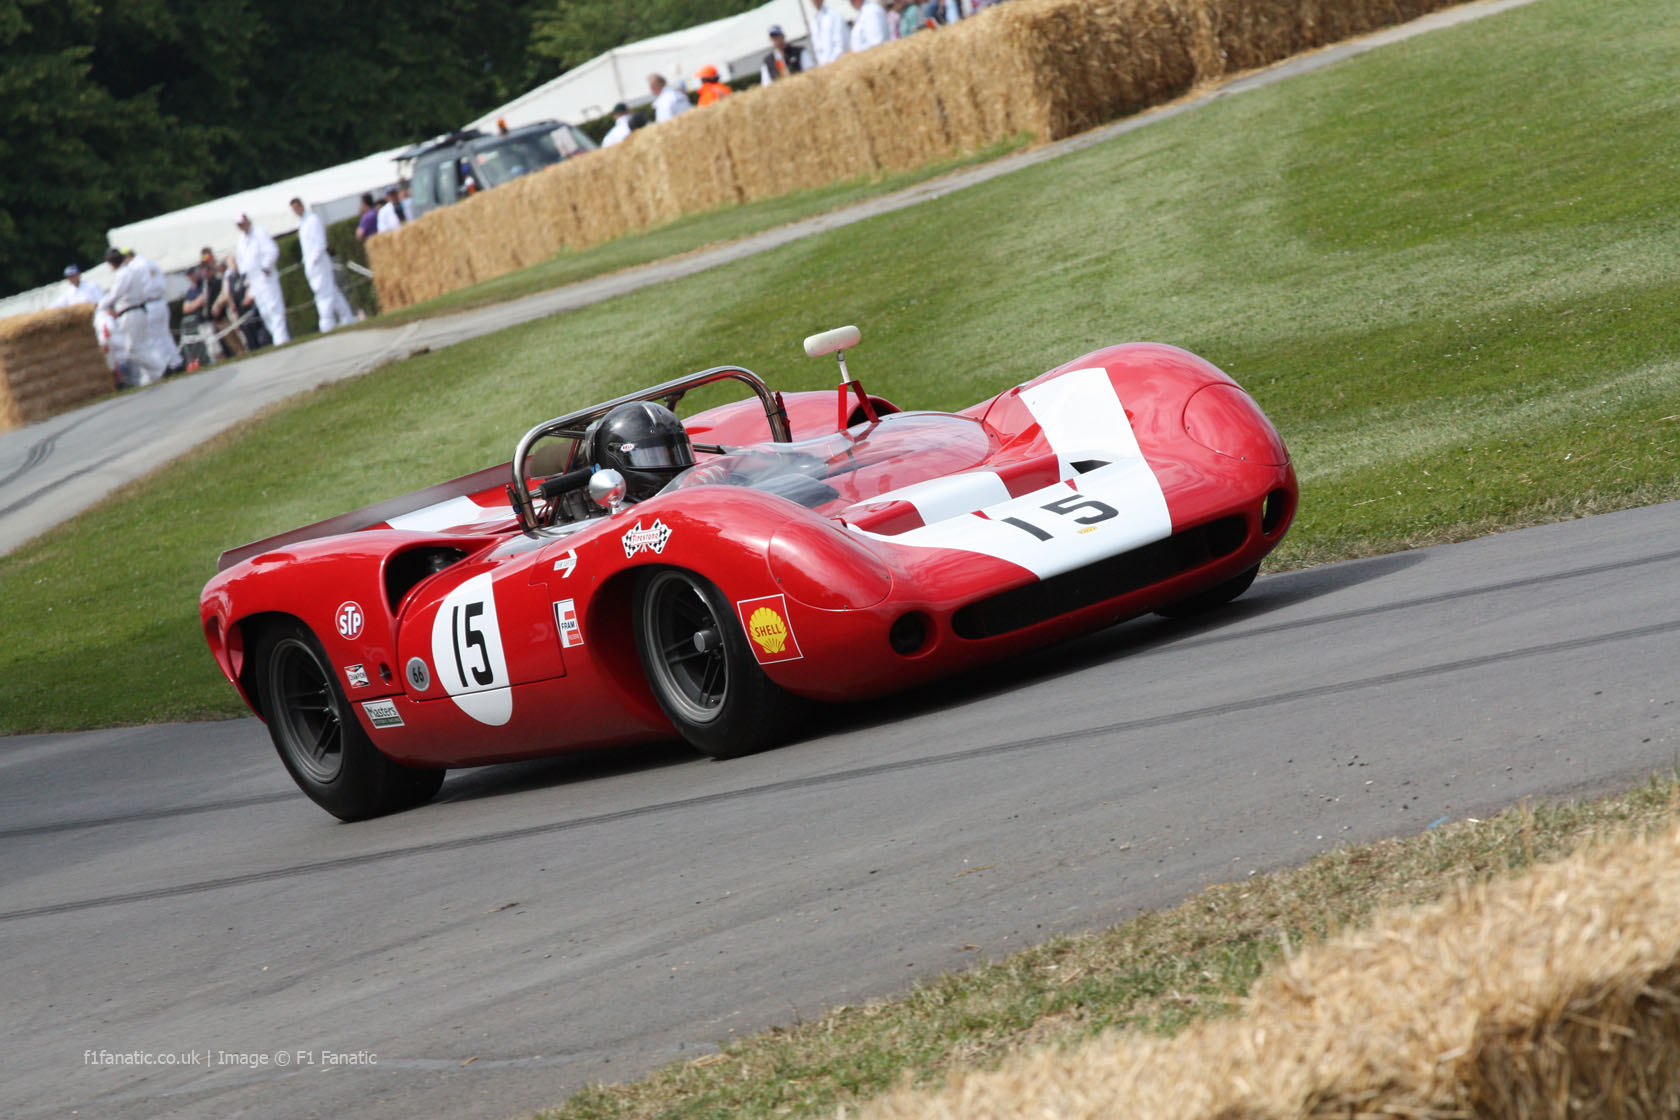 Lola-Chevrolet T70 Mk2 Spyder Can-Am, Goodwood Festival of Speed, 2014